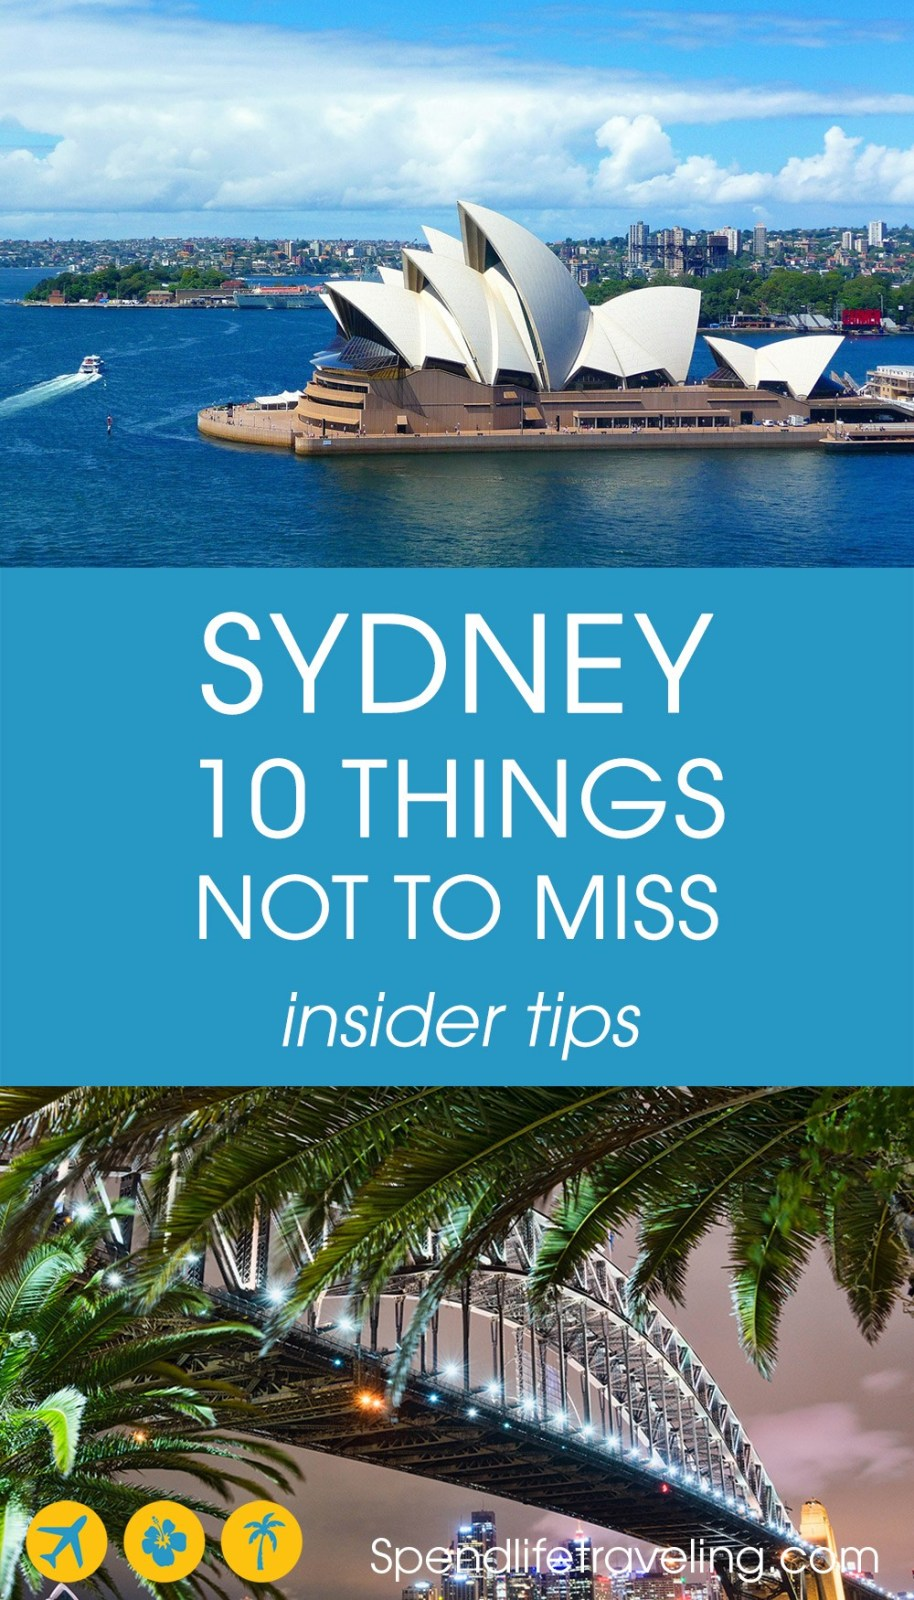 10 Things you definitely shouldn't miss when traveling to Sydney, Australia. Travel tips from a local. #Sydney #traveltips #Australia #travelguide